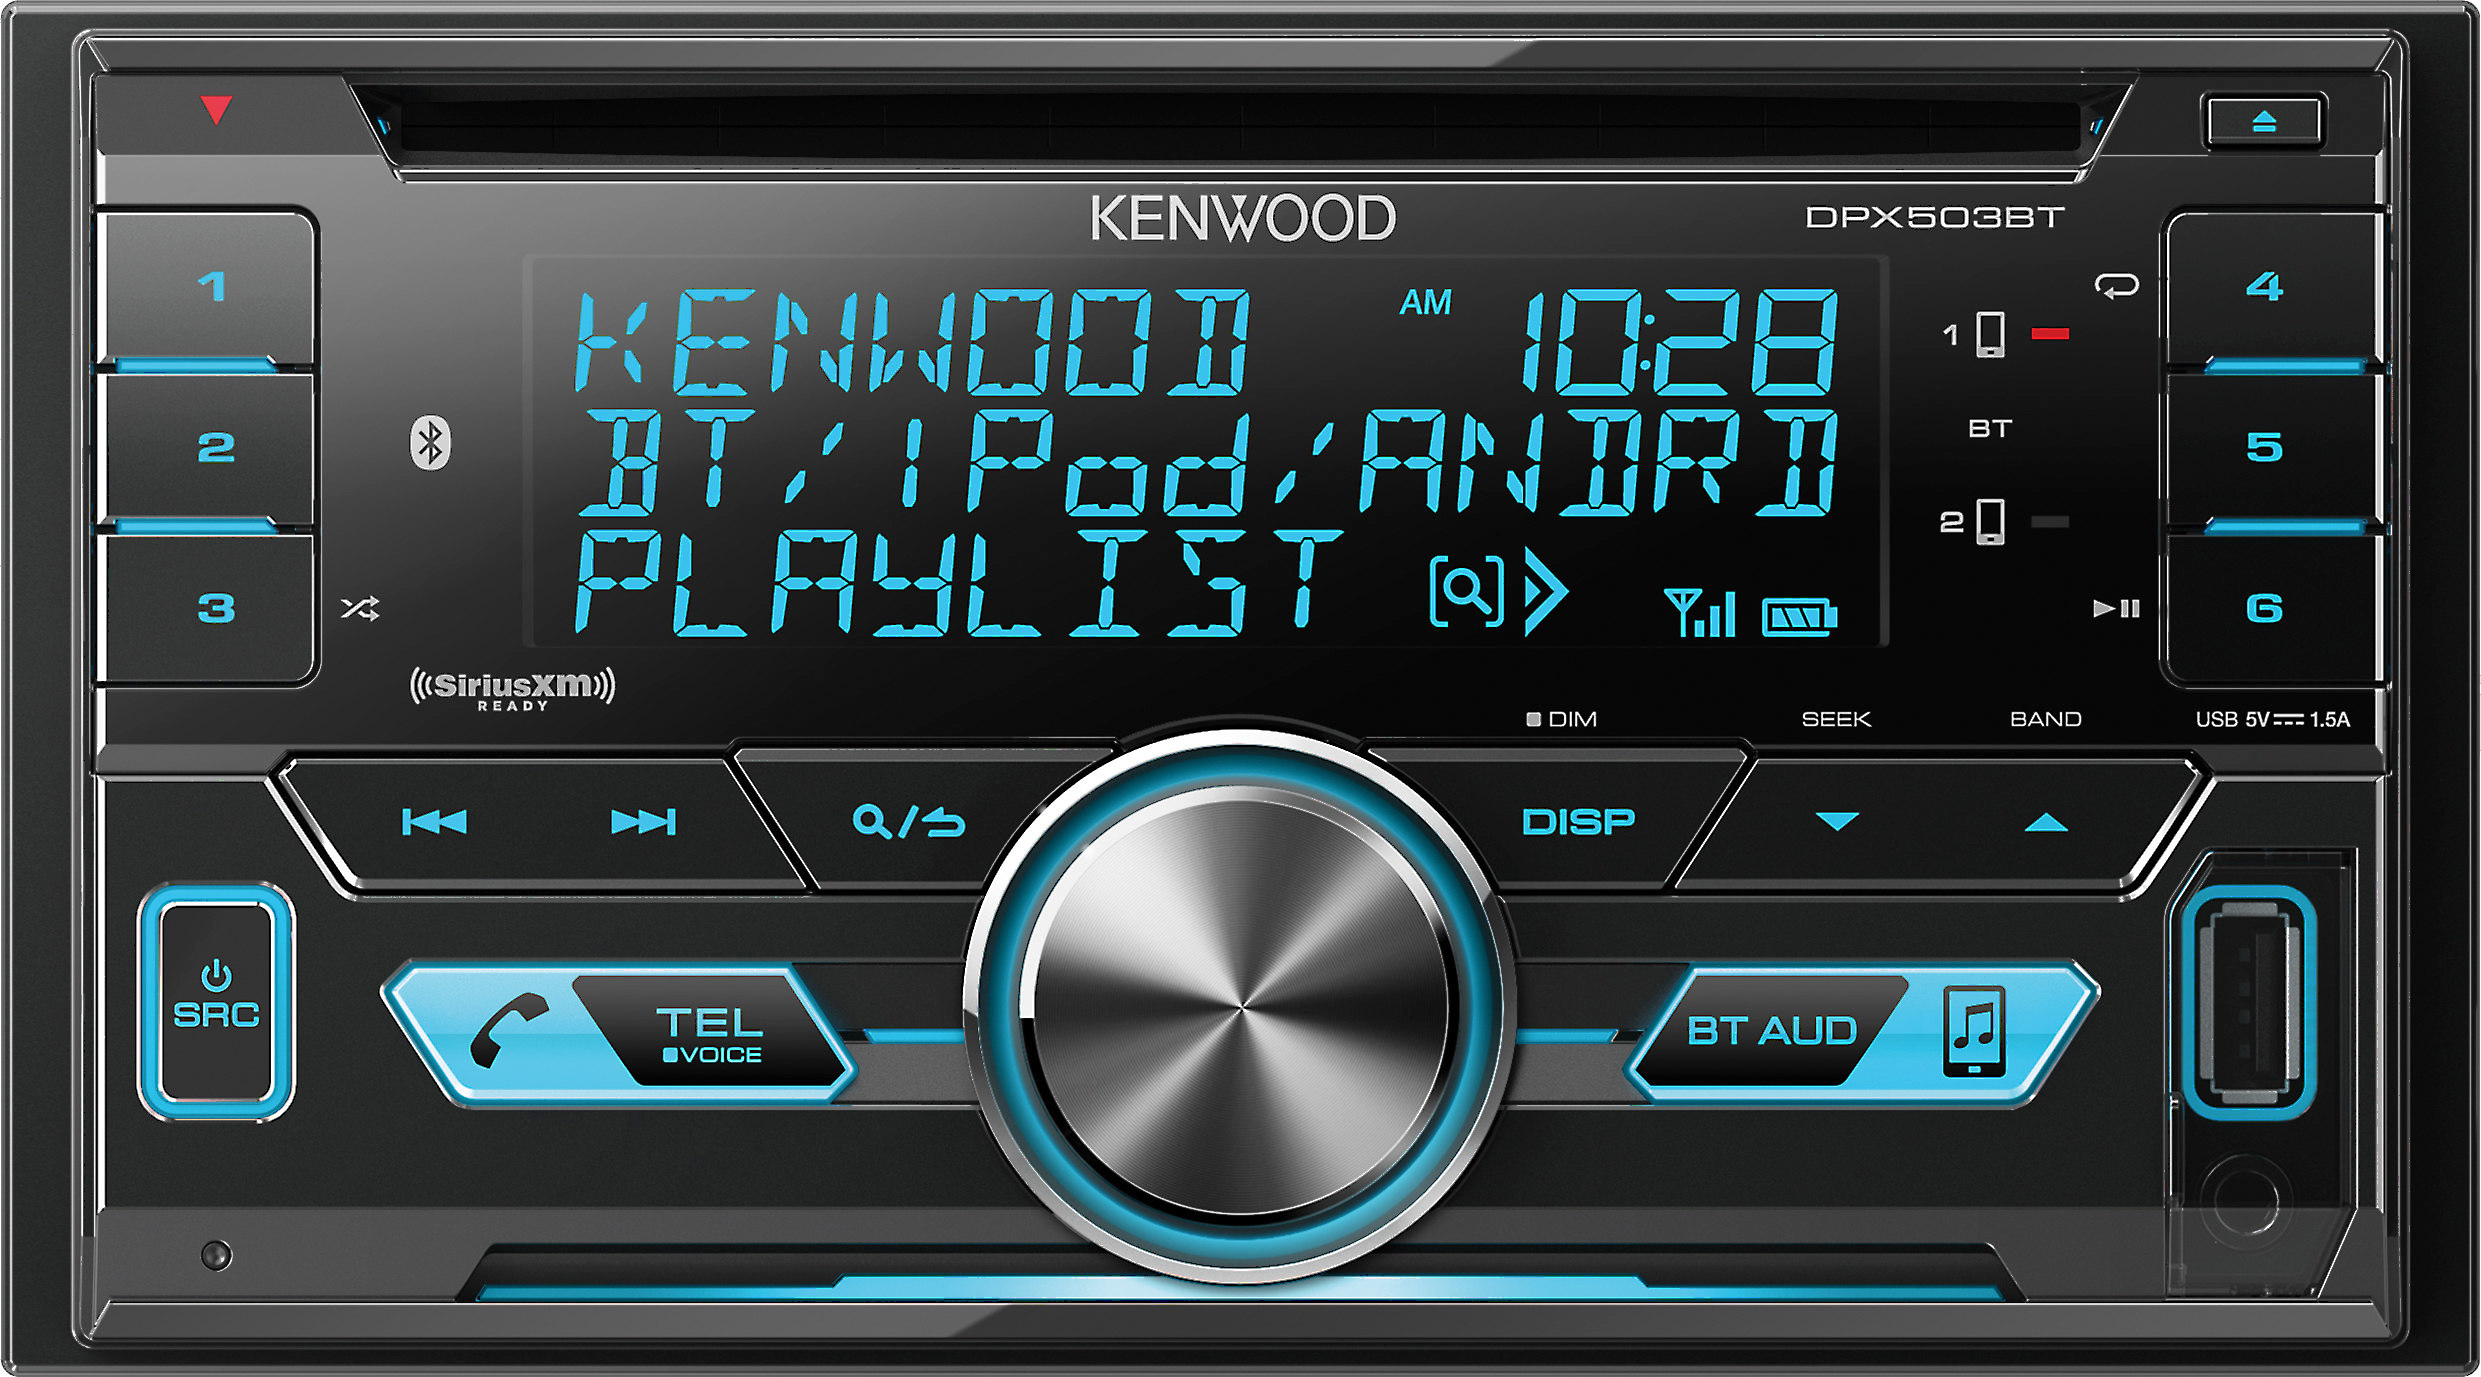 Kenwood DPX503BT CD receiver at Crutchfield